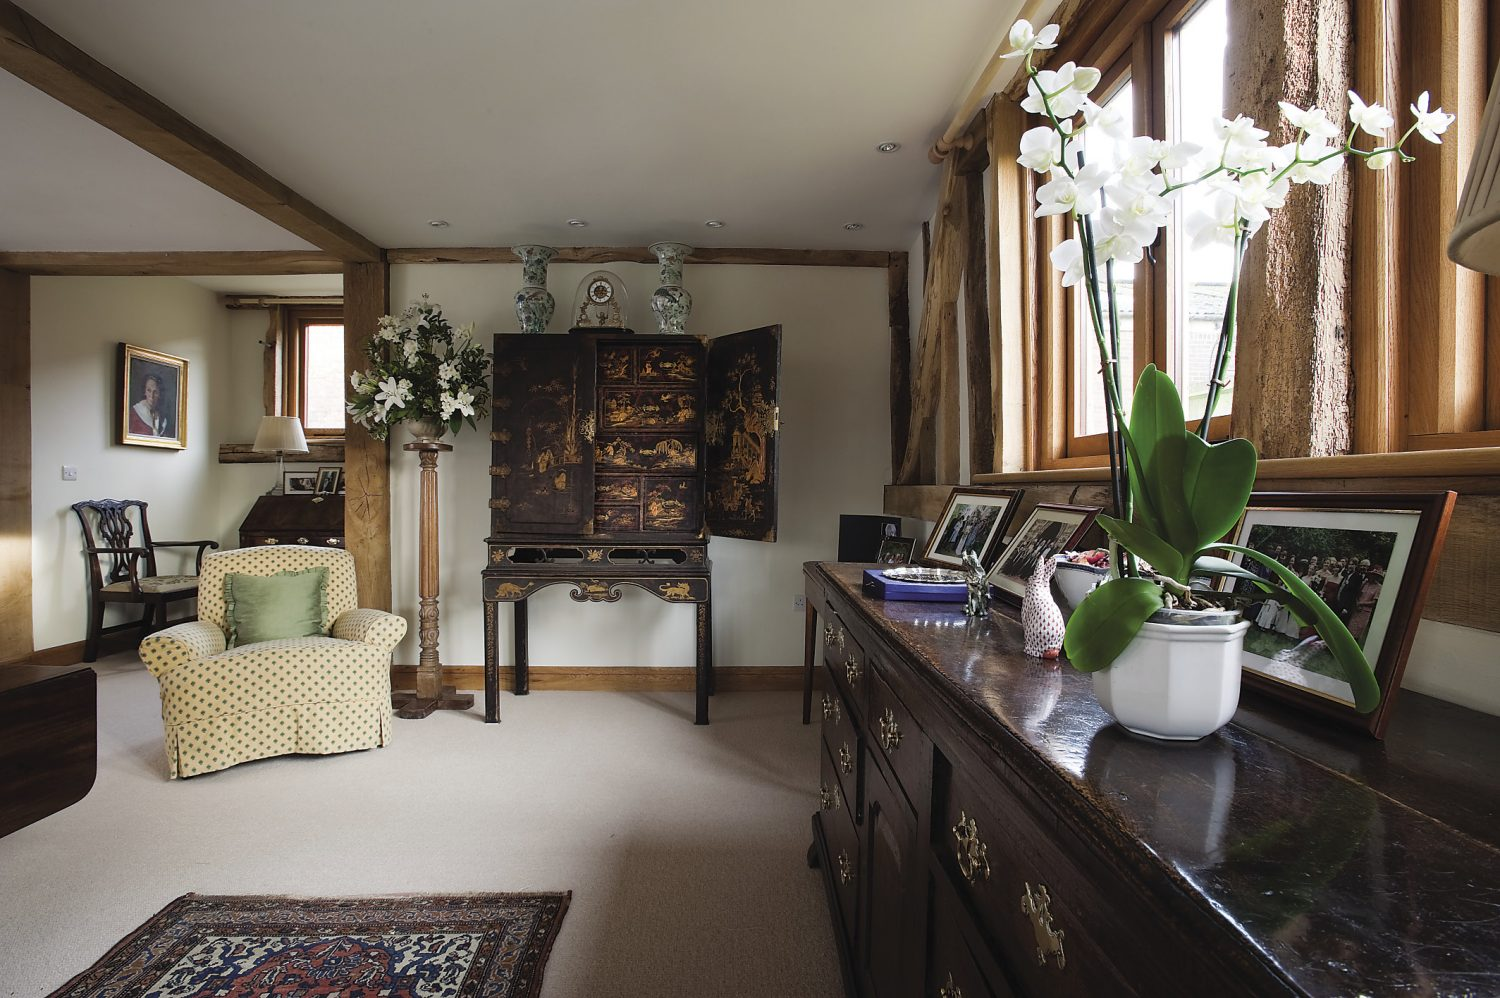 a flamboyant chinoiserie is situated next to a Derbyshire dresser